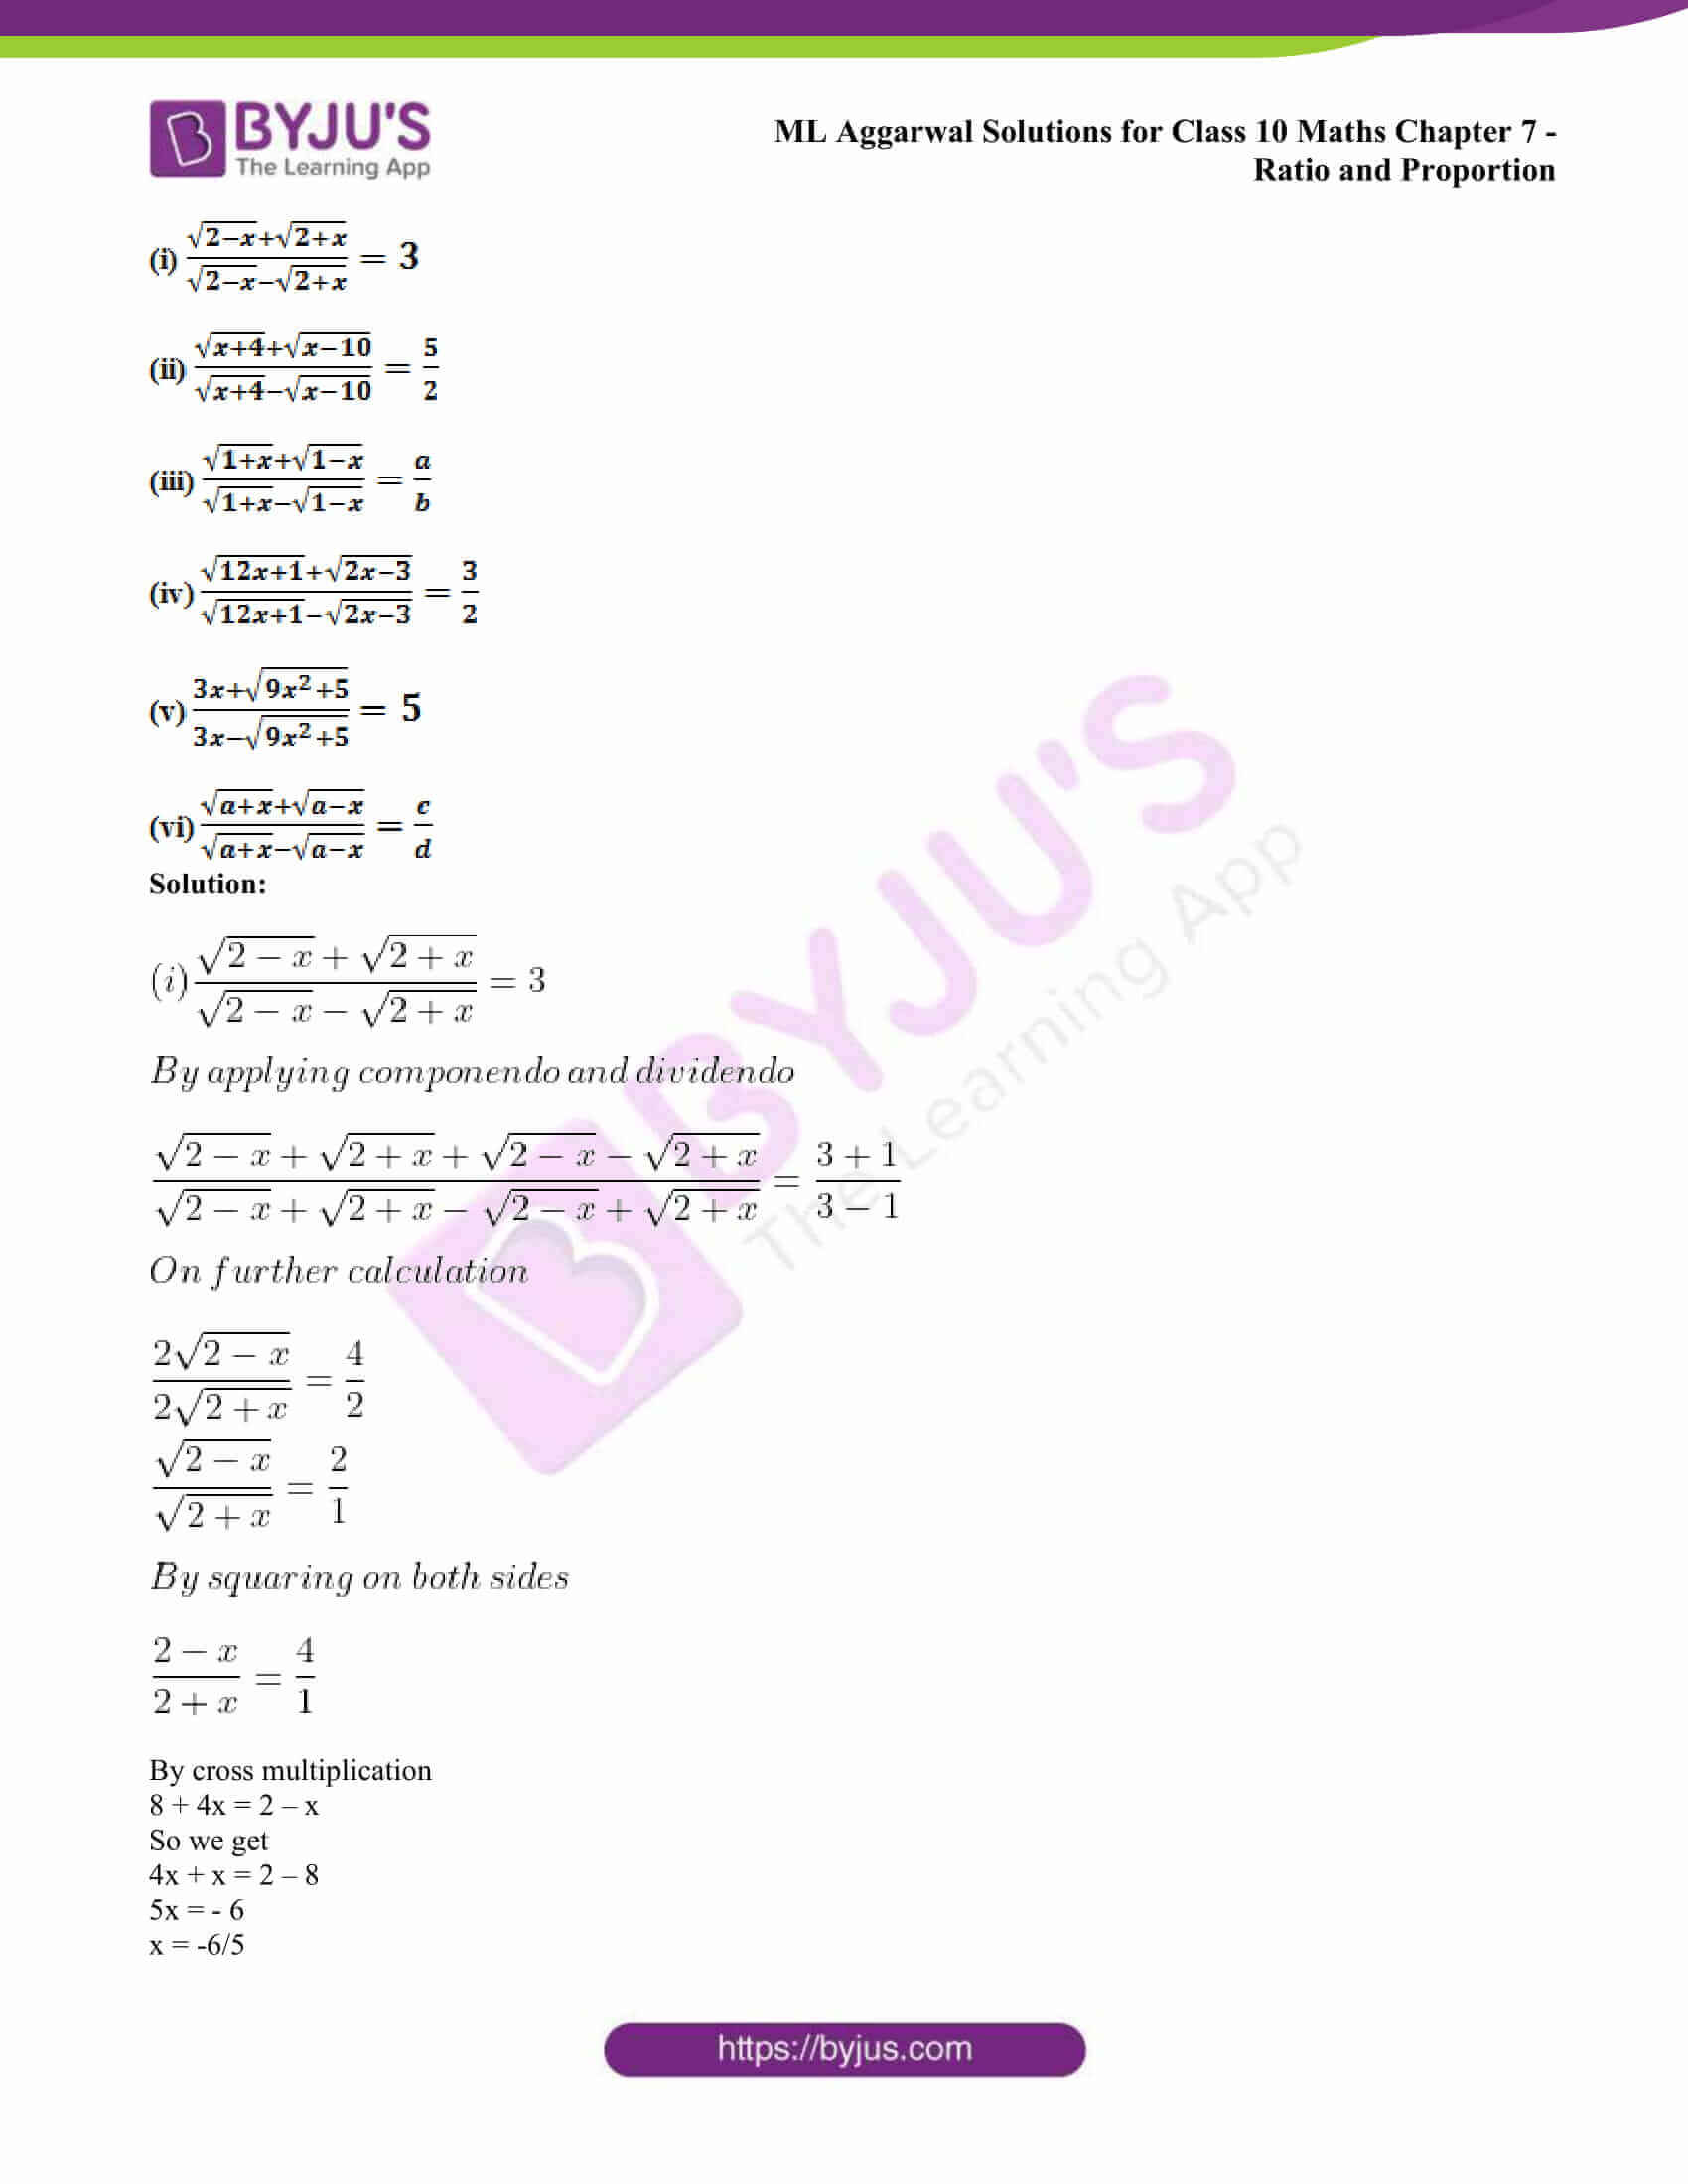 ml aggarwal solutions class 10 maths chapter 7 54